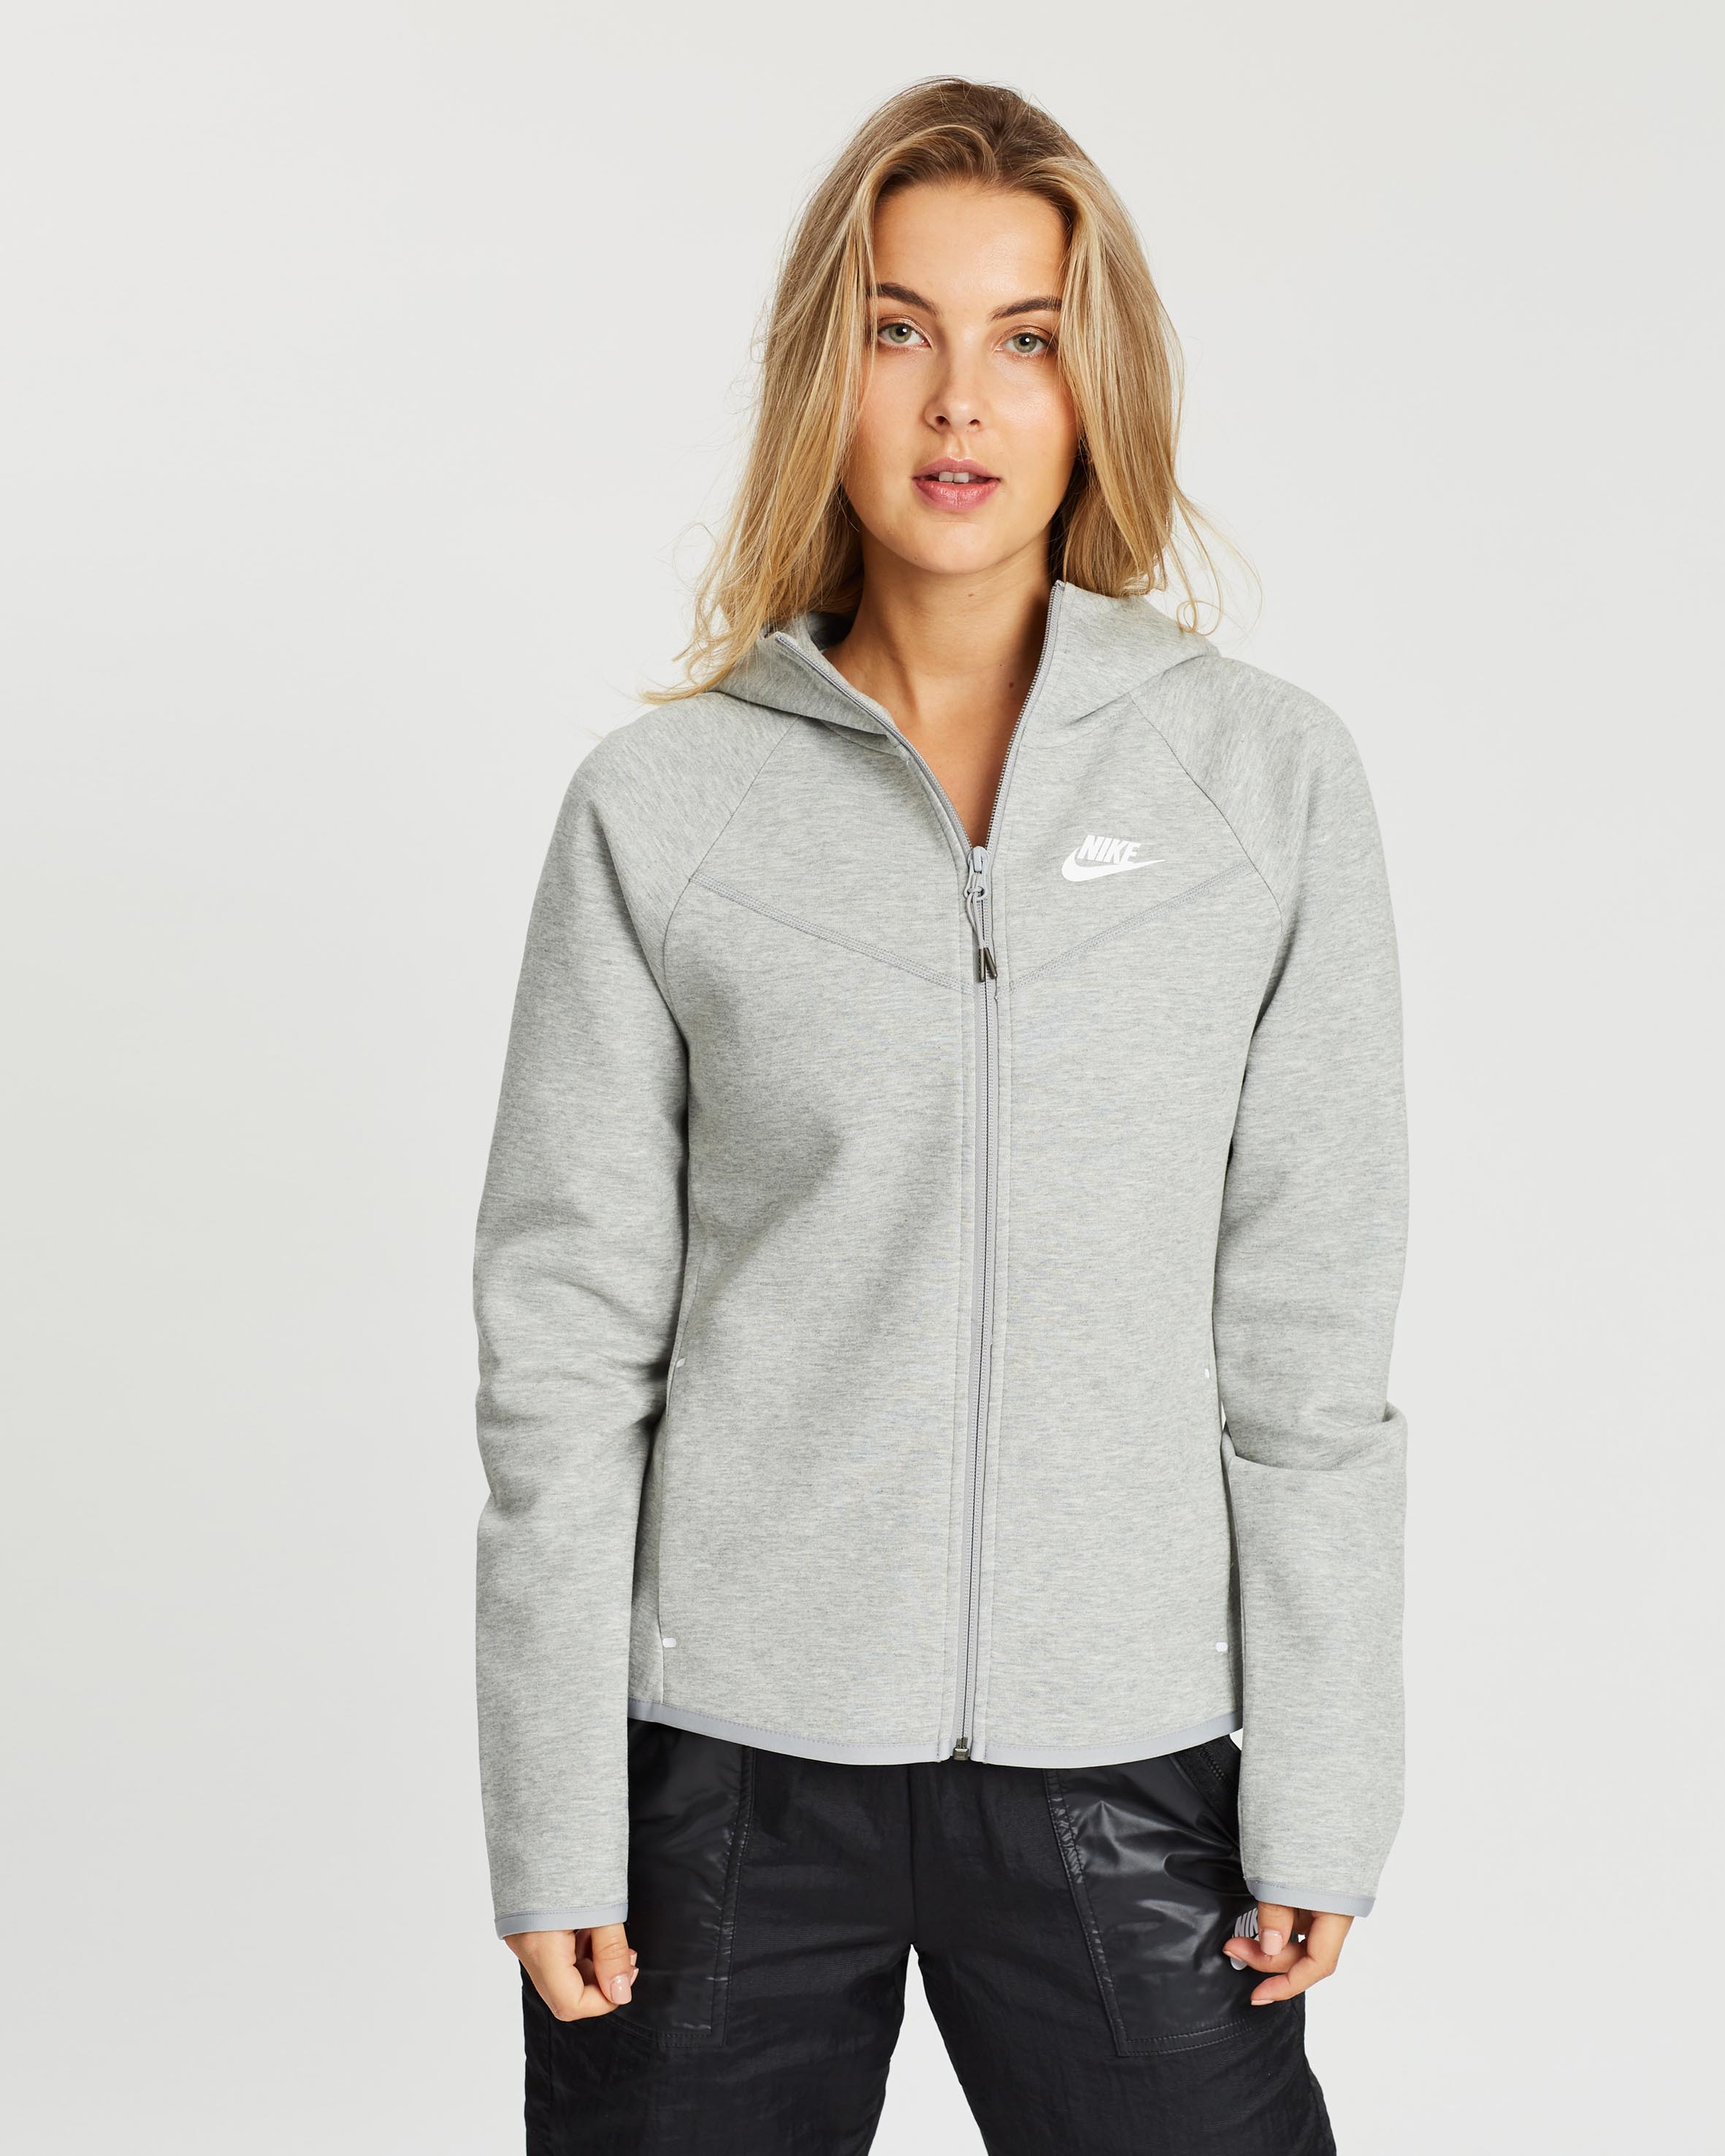 Men's Nike Sportswear Tech Fleece Full Zip Hoodie| Finish Line